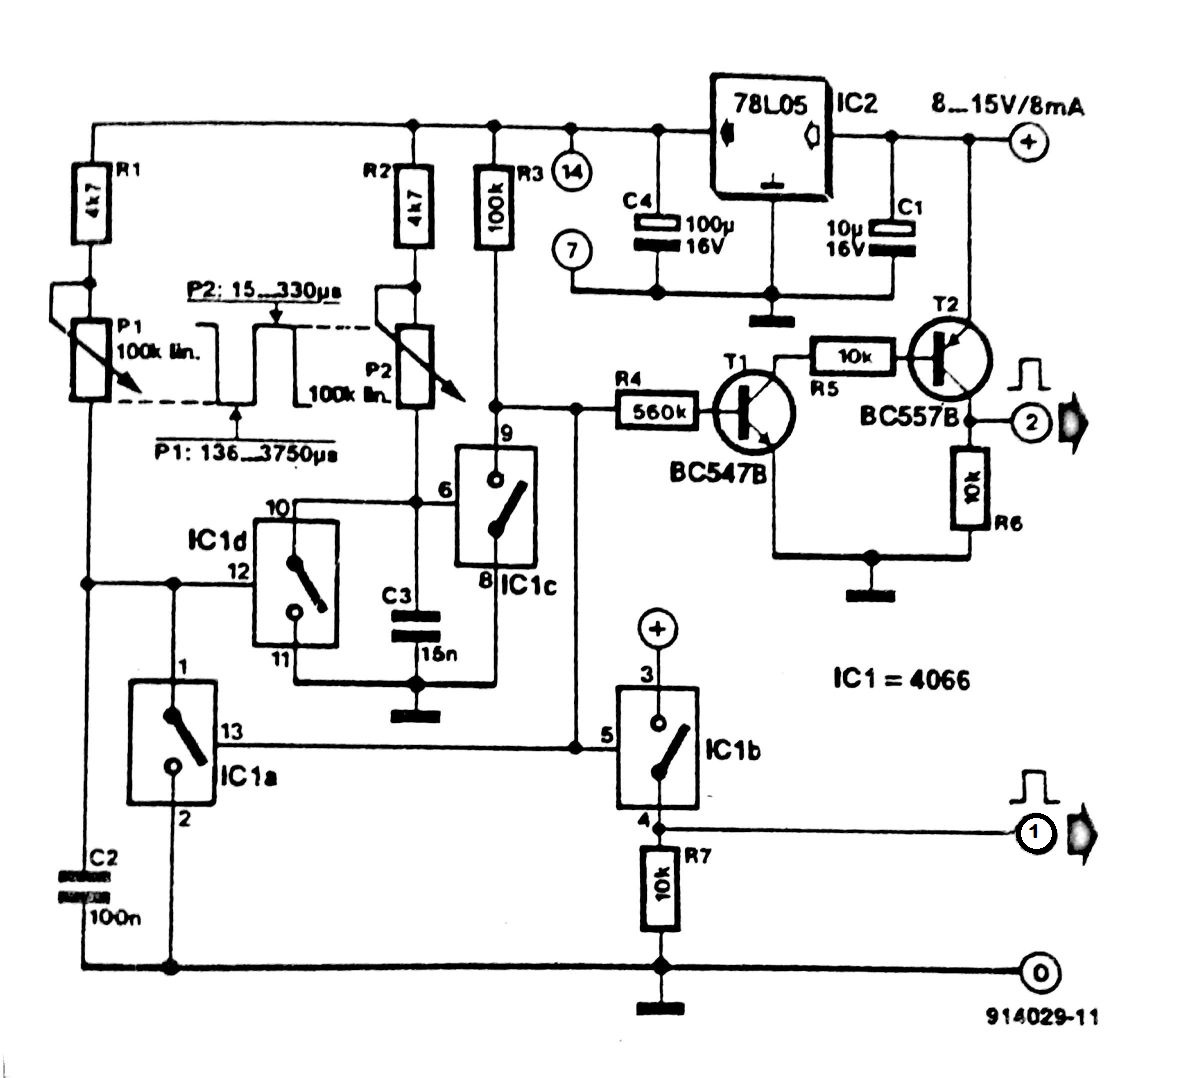 ... sears Pulse Generator with one 4066 Circuit Diagram generac panel ram wiring  diagrams bolens wiring diagram,